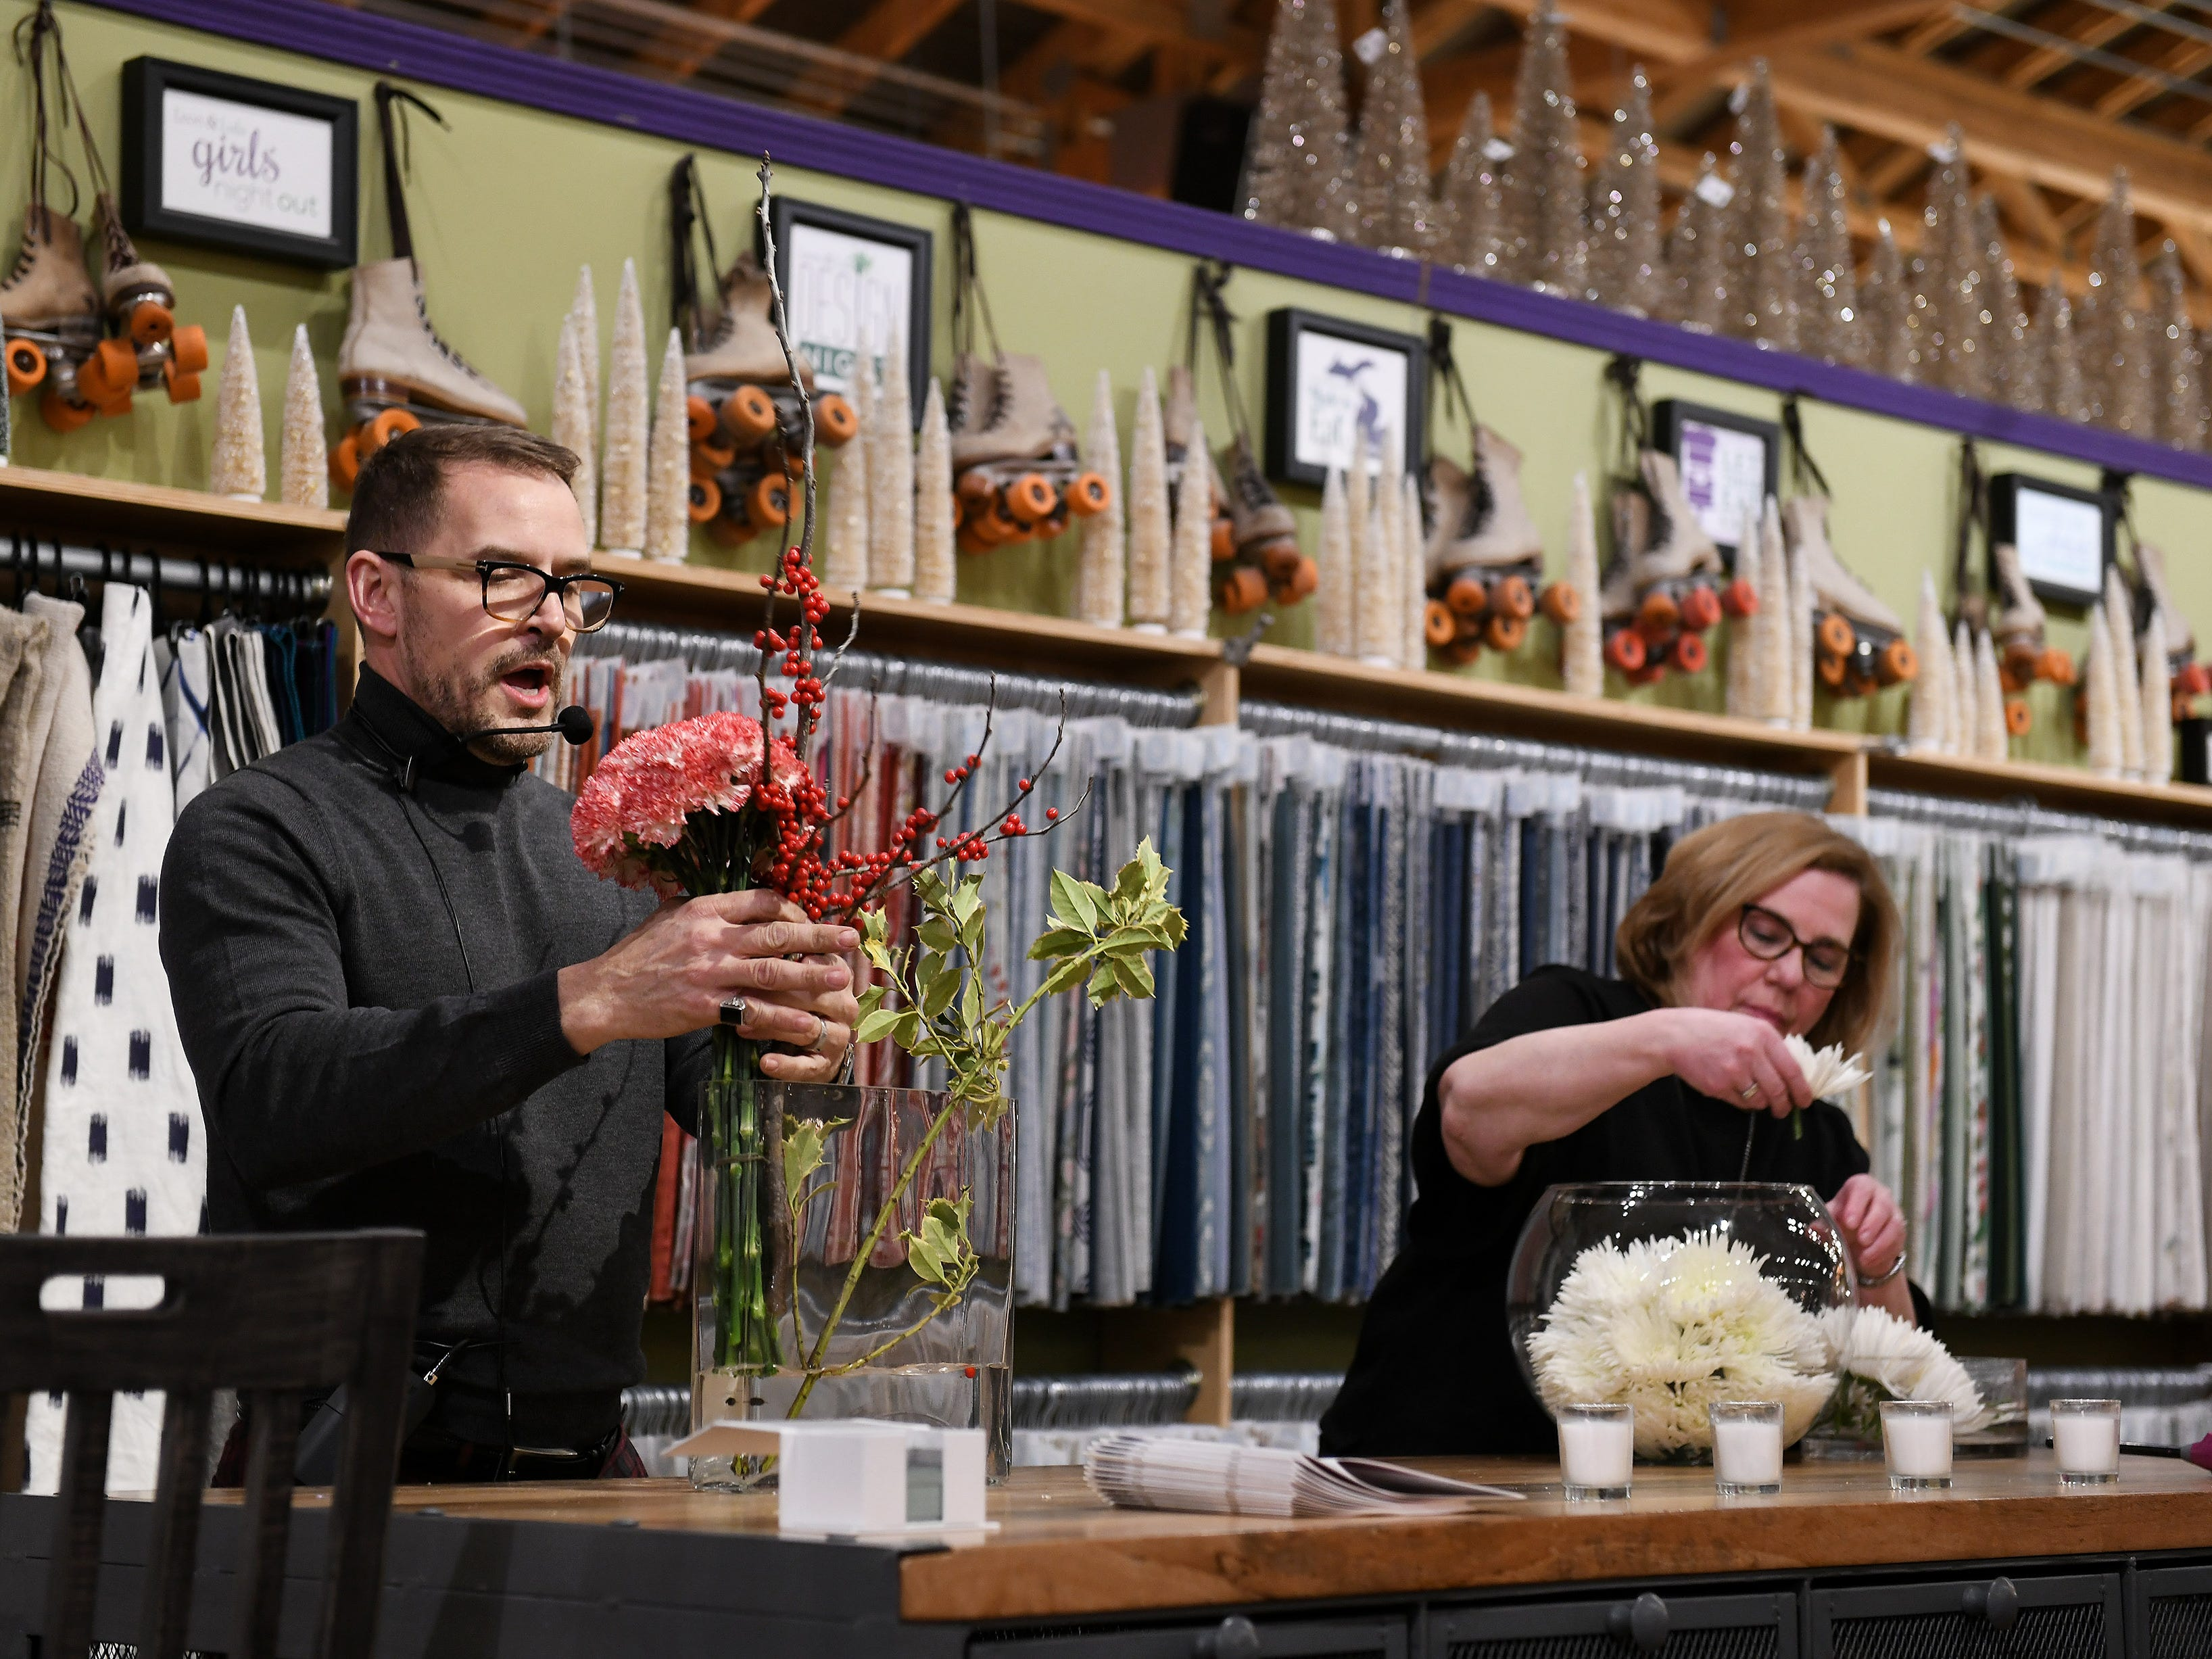 Denise Boreczky helps fill a glass bowl with flowers while Jeffrey Jucewicz of Jeffrey Floral Architecture shows how simple and elegant a centerpiece can be made, this one with carnations and holly.